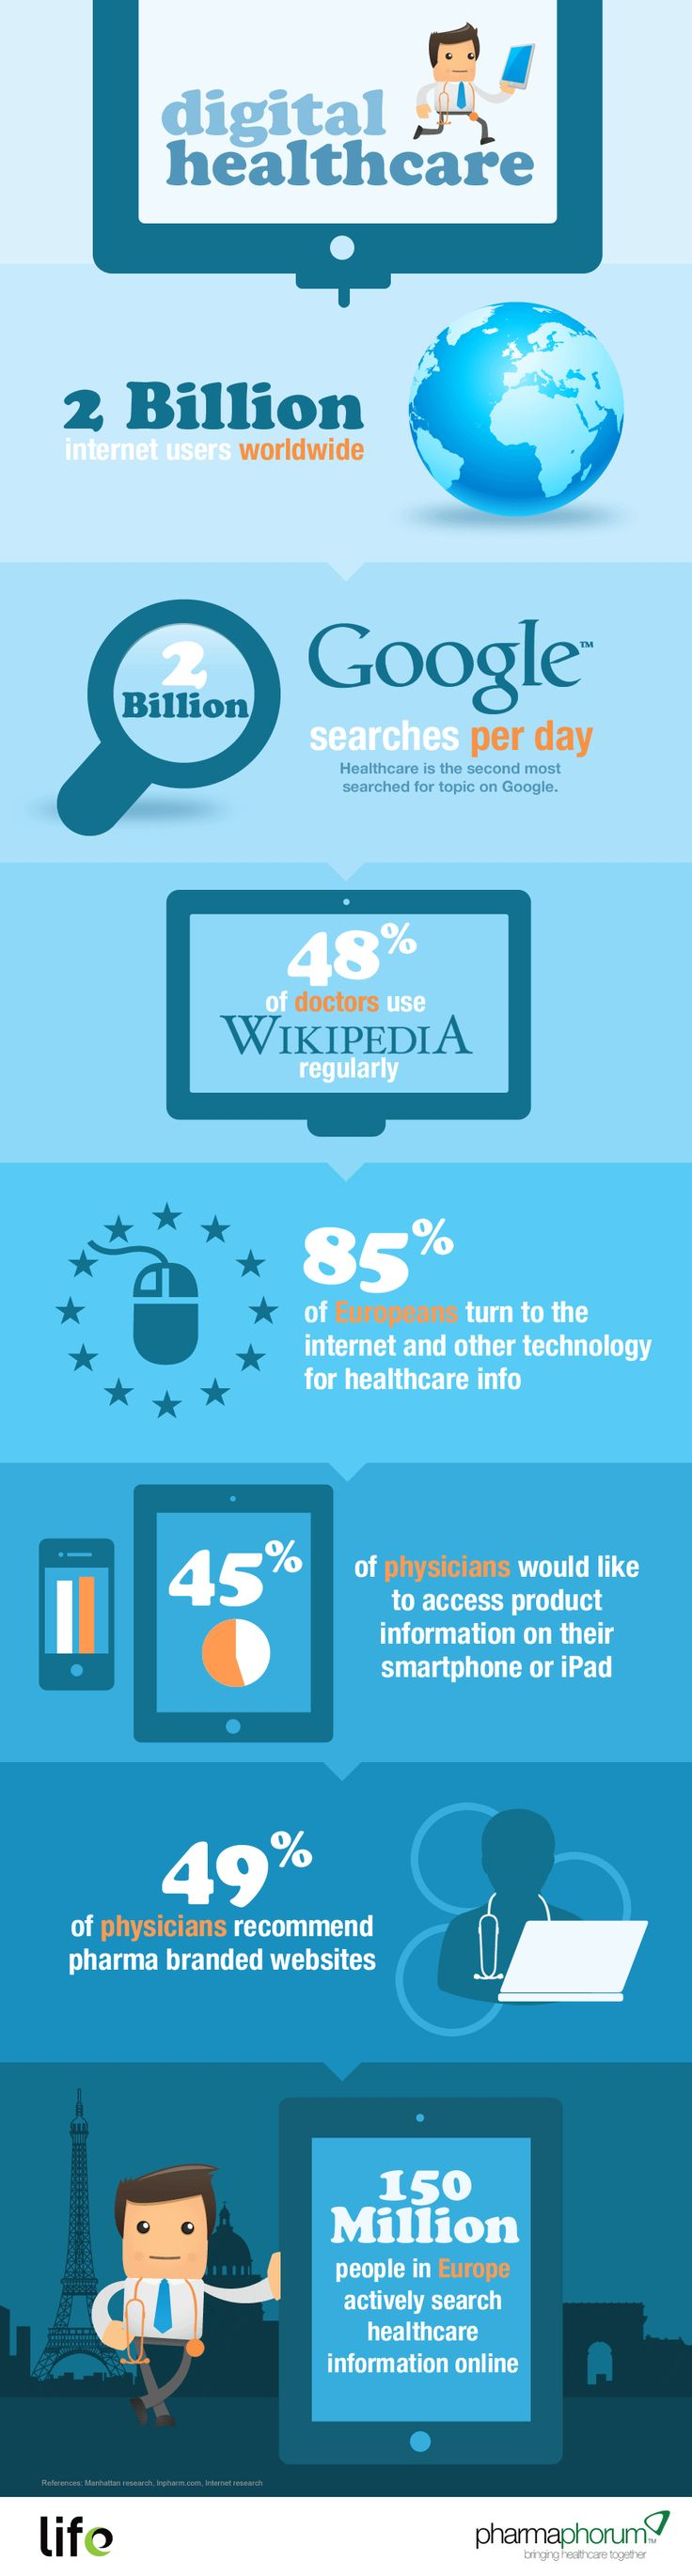 Digital stats on how people interact digitally in healthcare.